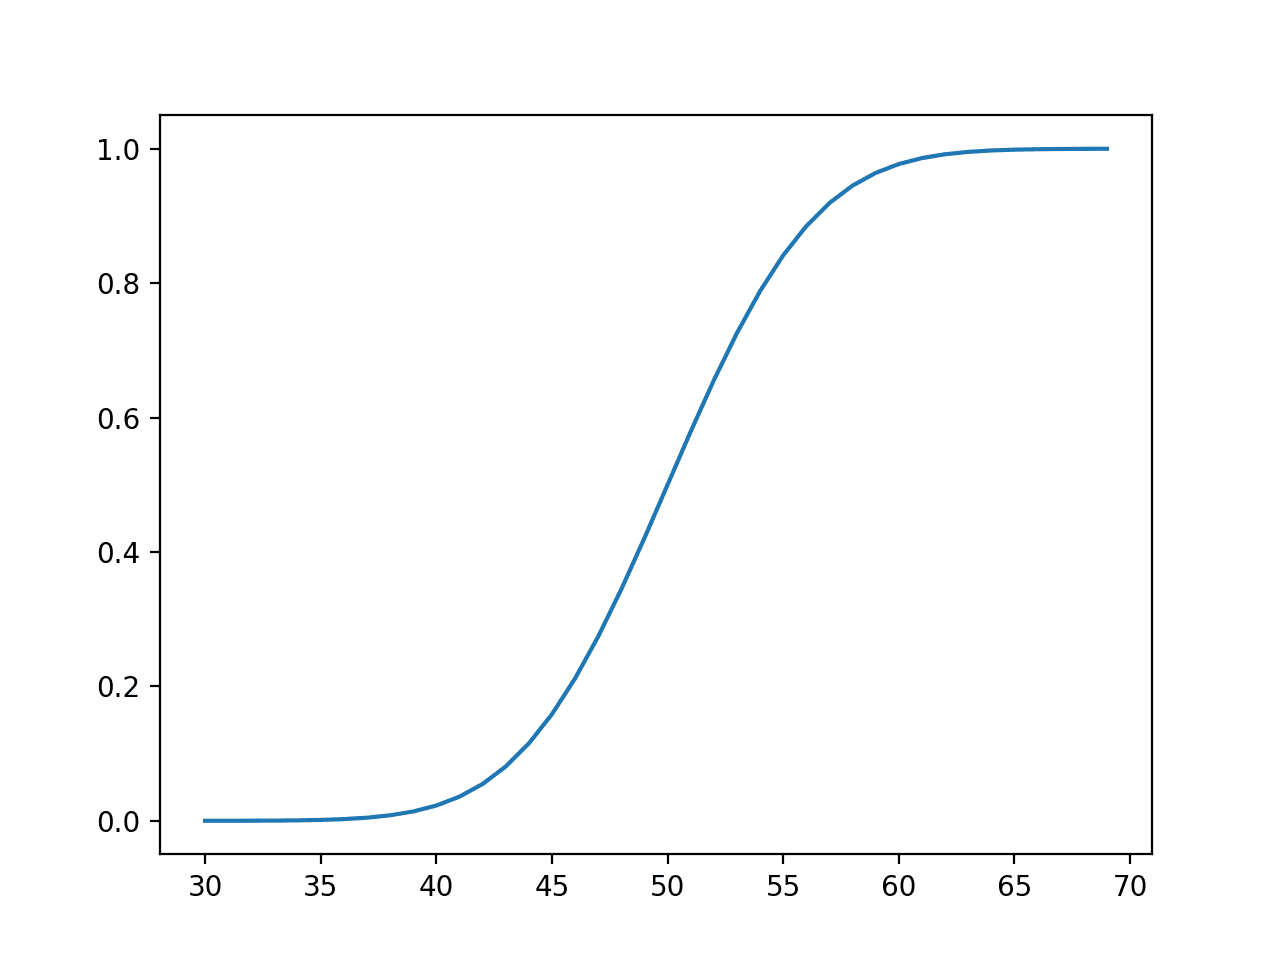 Line Plot of Events vs. Cumulative Probability or the Cumulative Density Function for the Normal Distribution